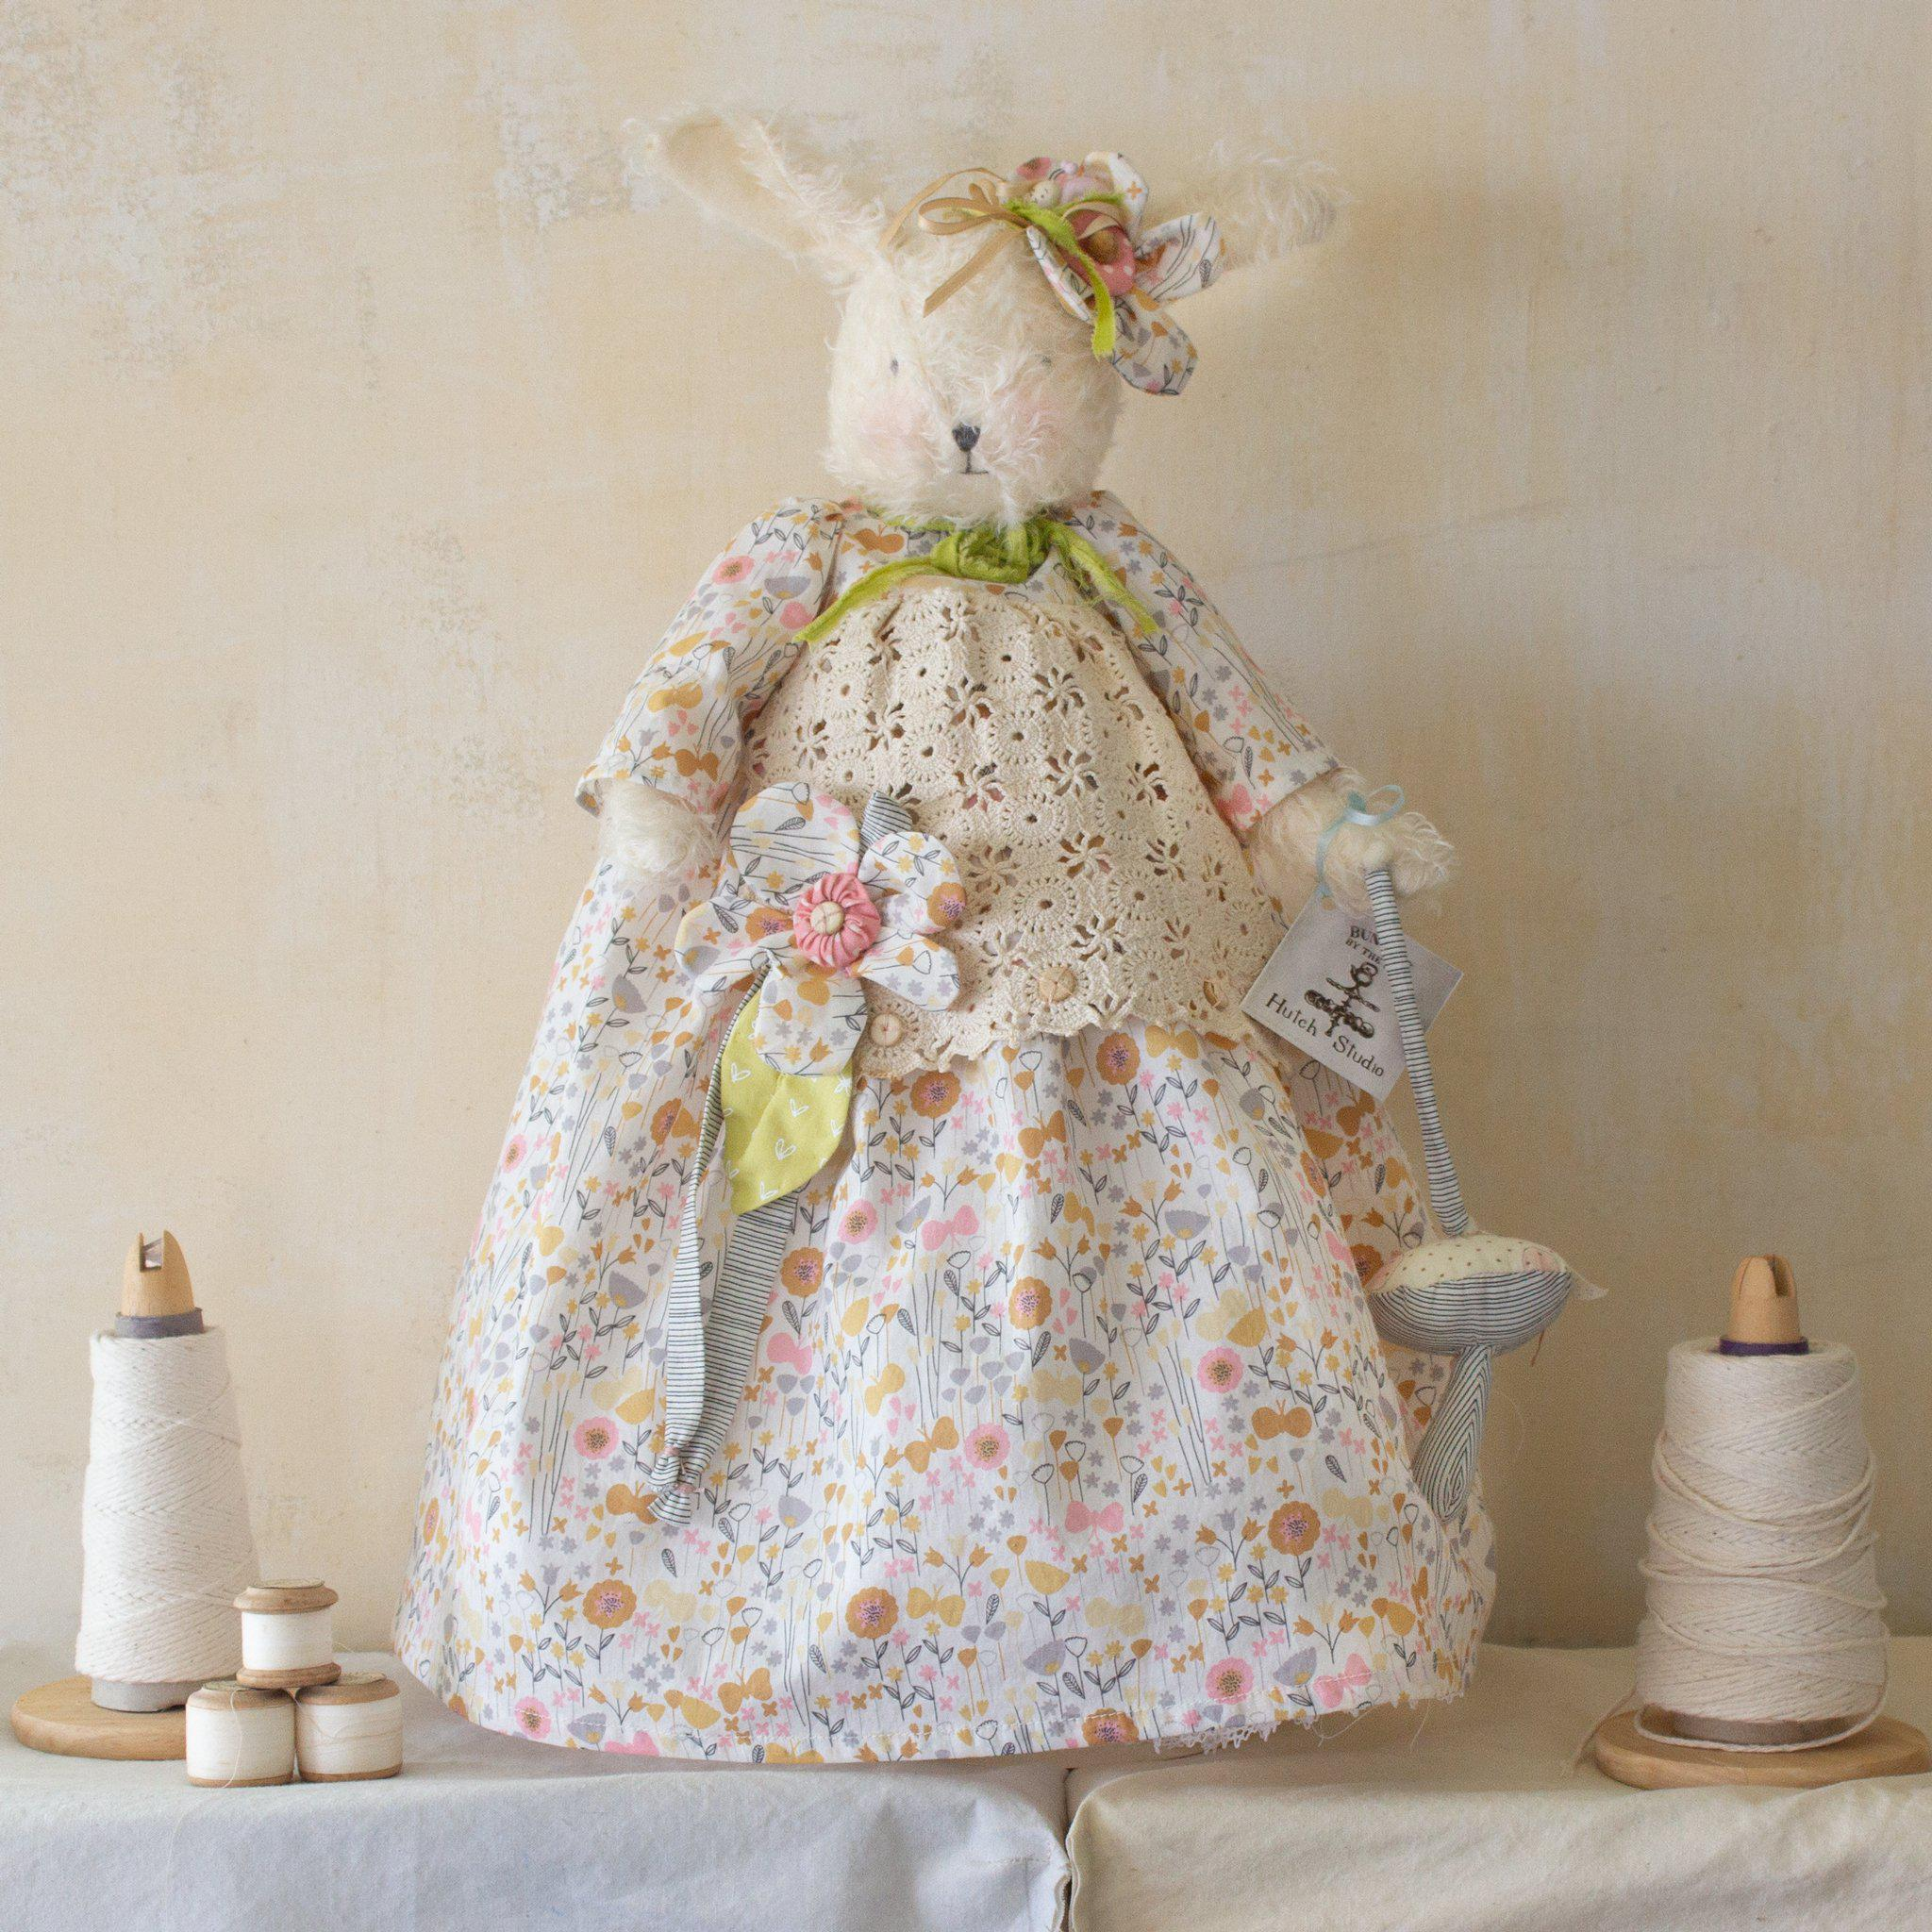 Hutch Studio - Miss Mustard Seed - One Of A Kind Bunny